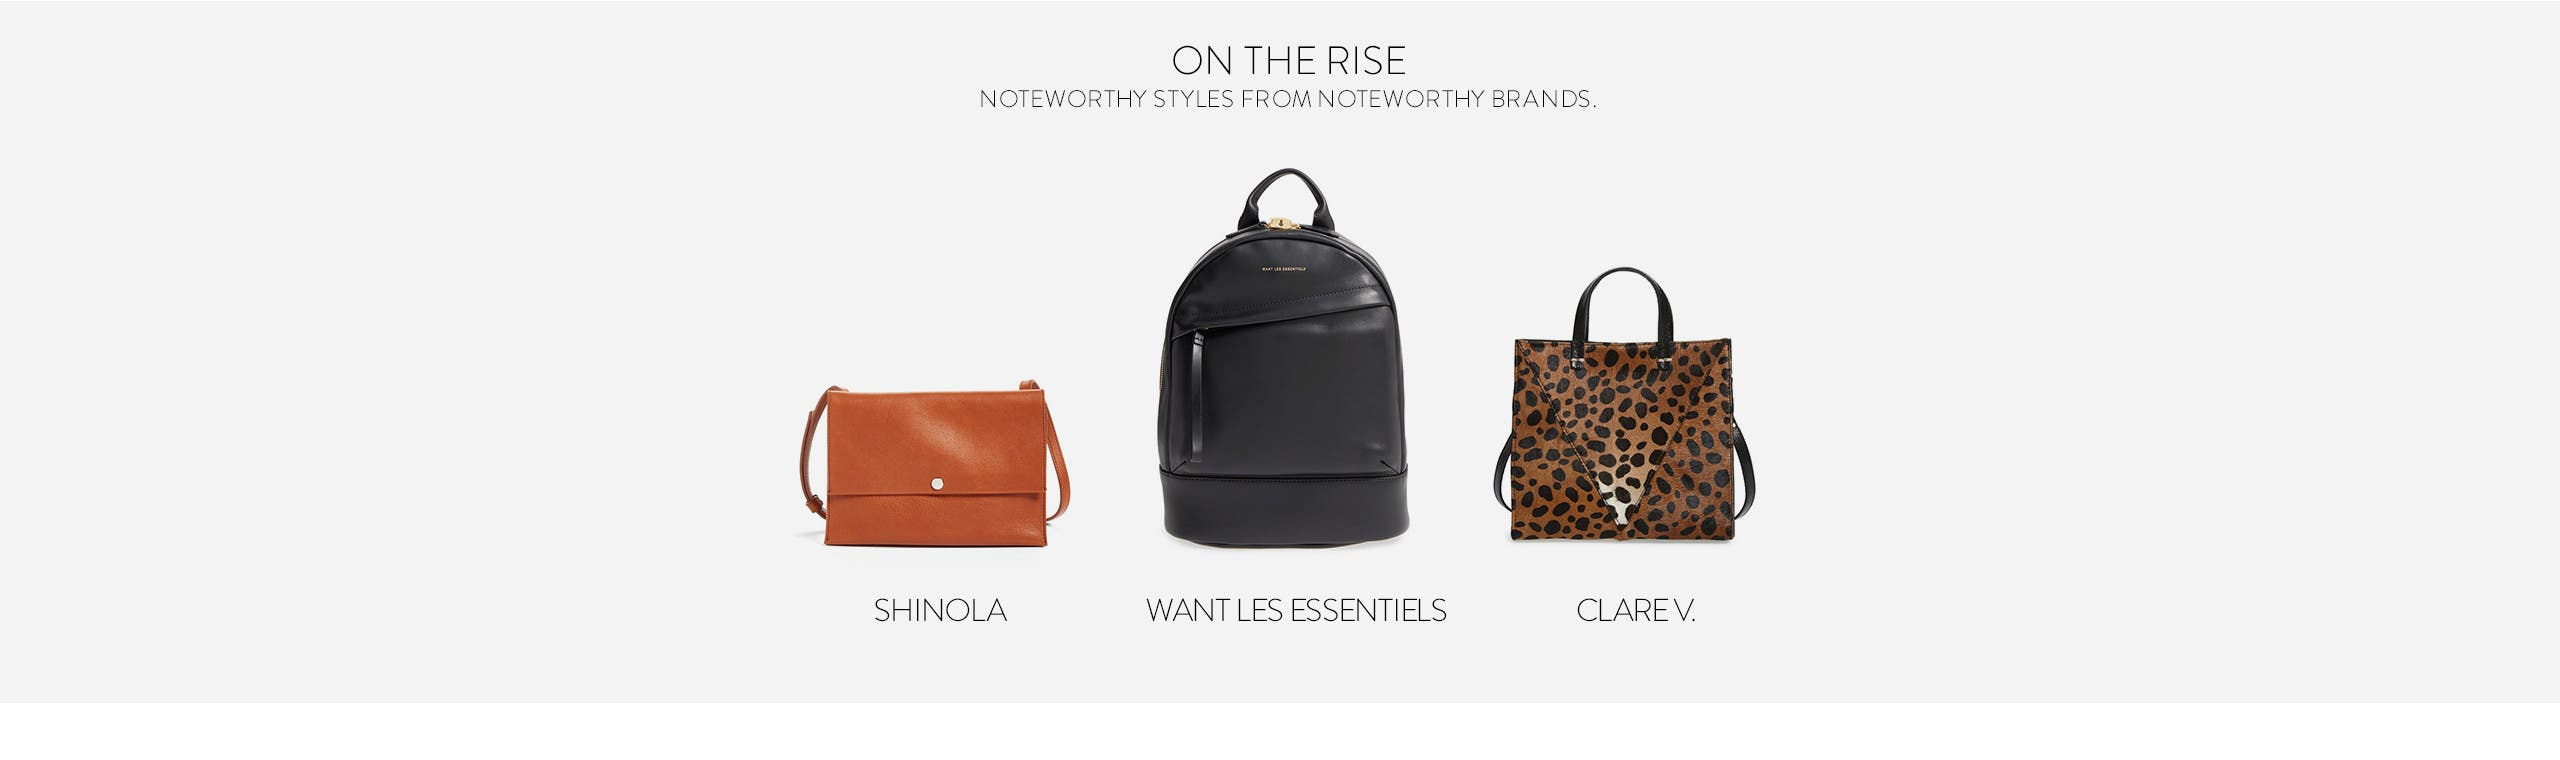 On the rise. Shinola. WANT LES ESSENTIELS. Clare V.